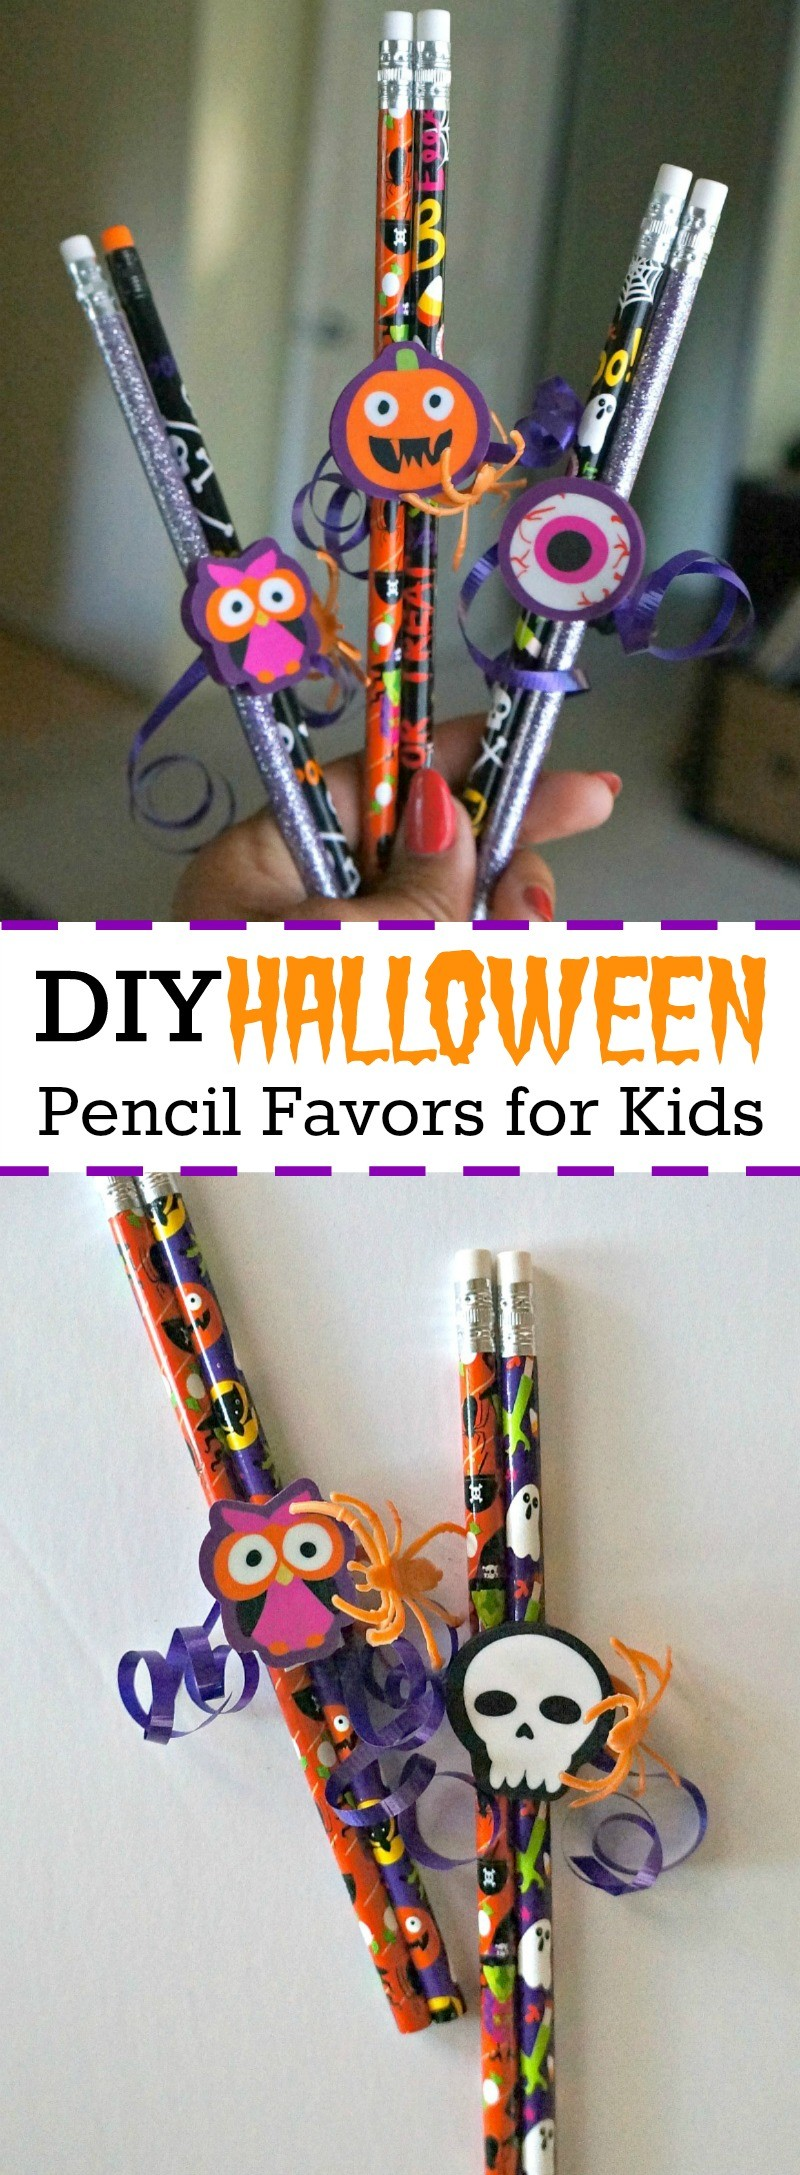 DIY Halloween Pencil Favors: Easy No-Candy Halloween Treats for ...